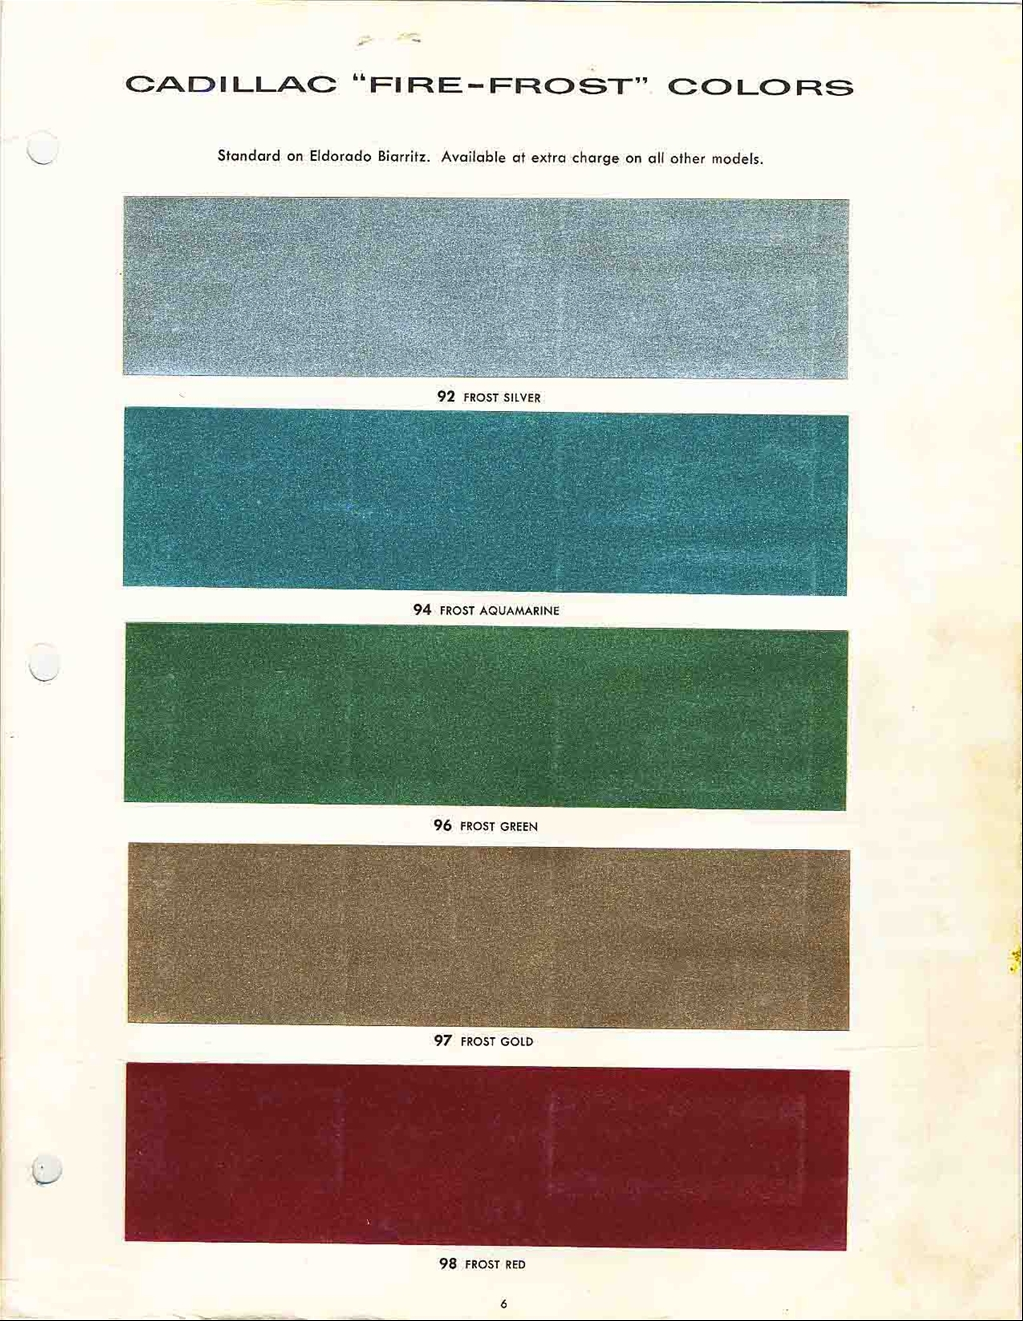 Official Cadillac Color Names and Paint Codes [Archive] - Cadillac ...